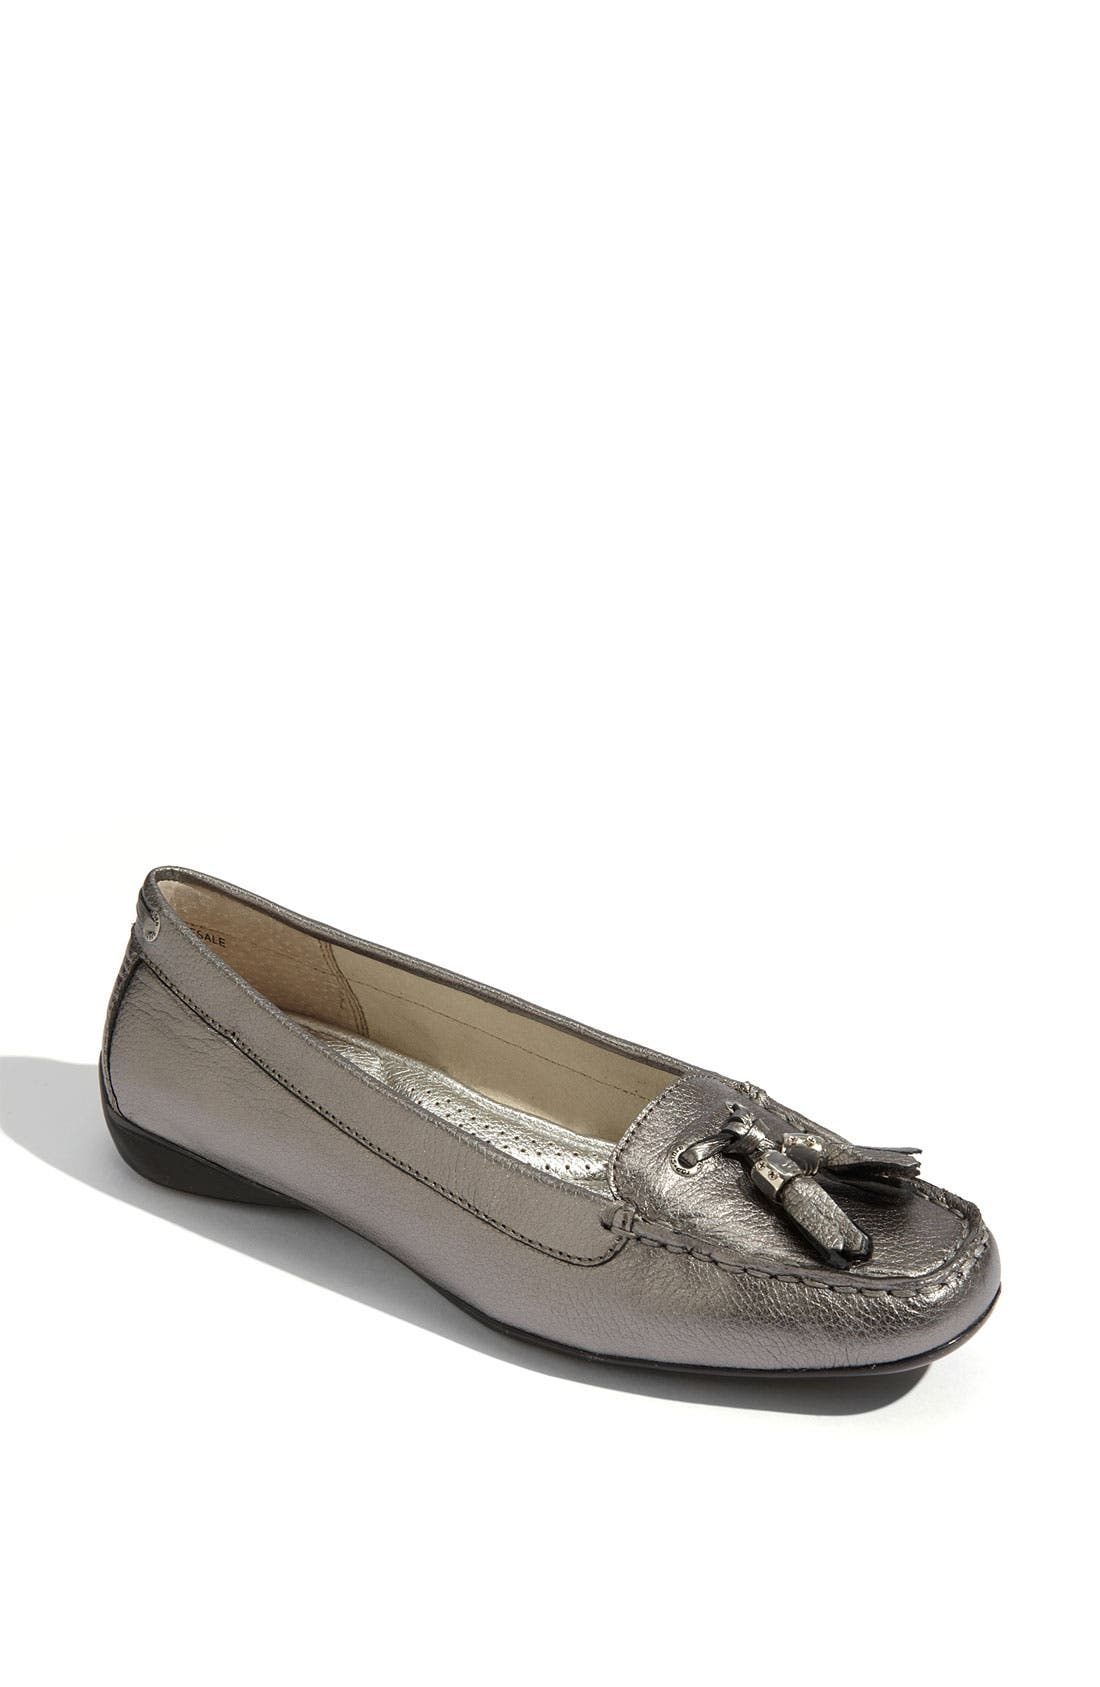 Main Image - Sperry Top-Sider® 'Brantpoint' Metallic Loafer